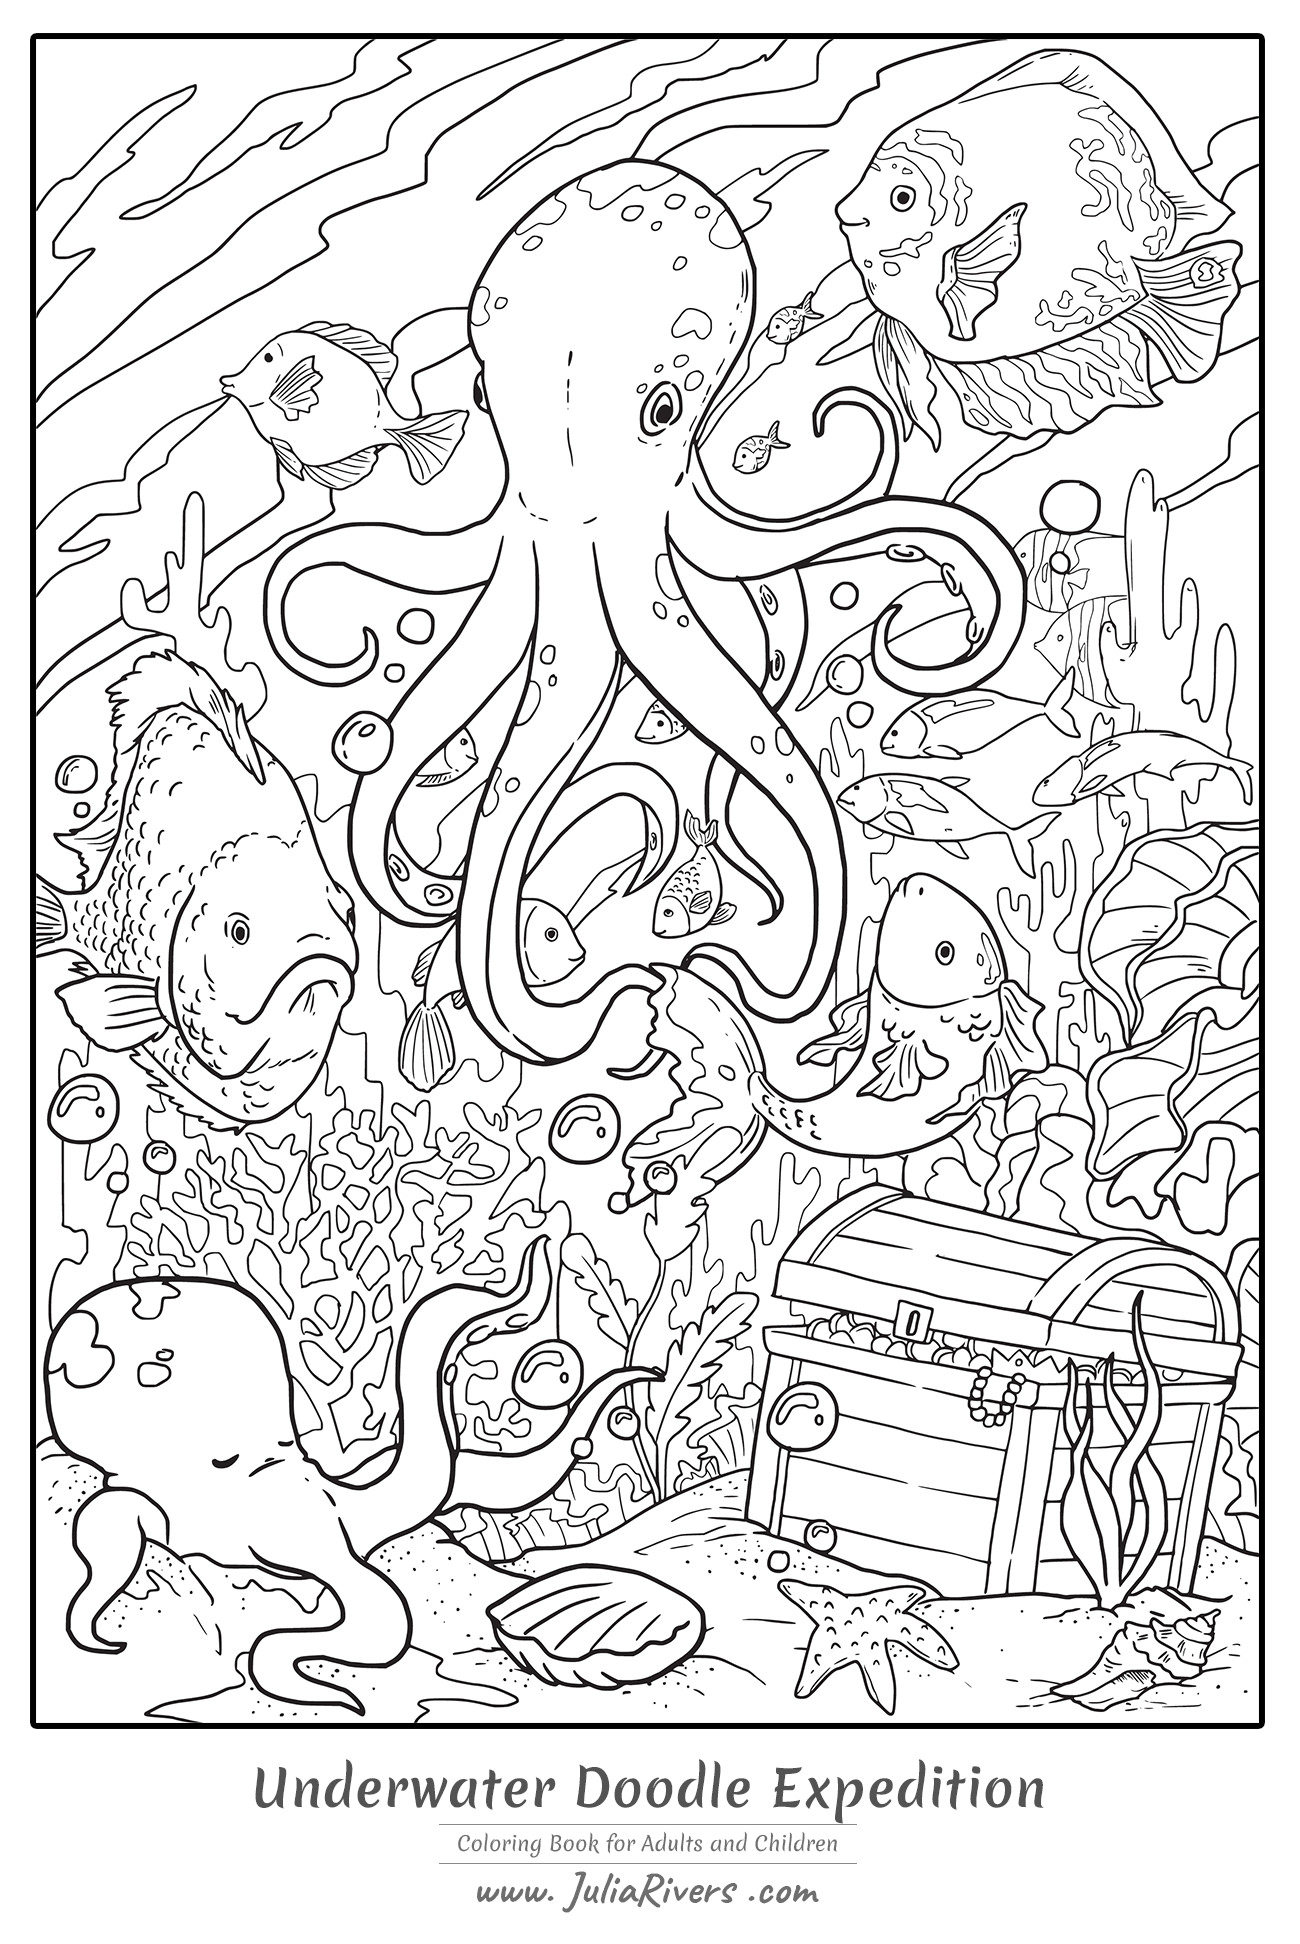 'Underwater Doodle Expedition' : Magnificent coloring page representing a giant Octopus at the bottom of the sea, with fishes, coral and a mysterious treasure